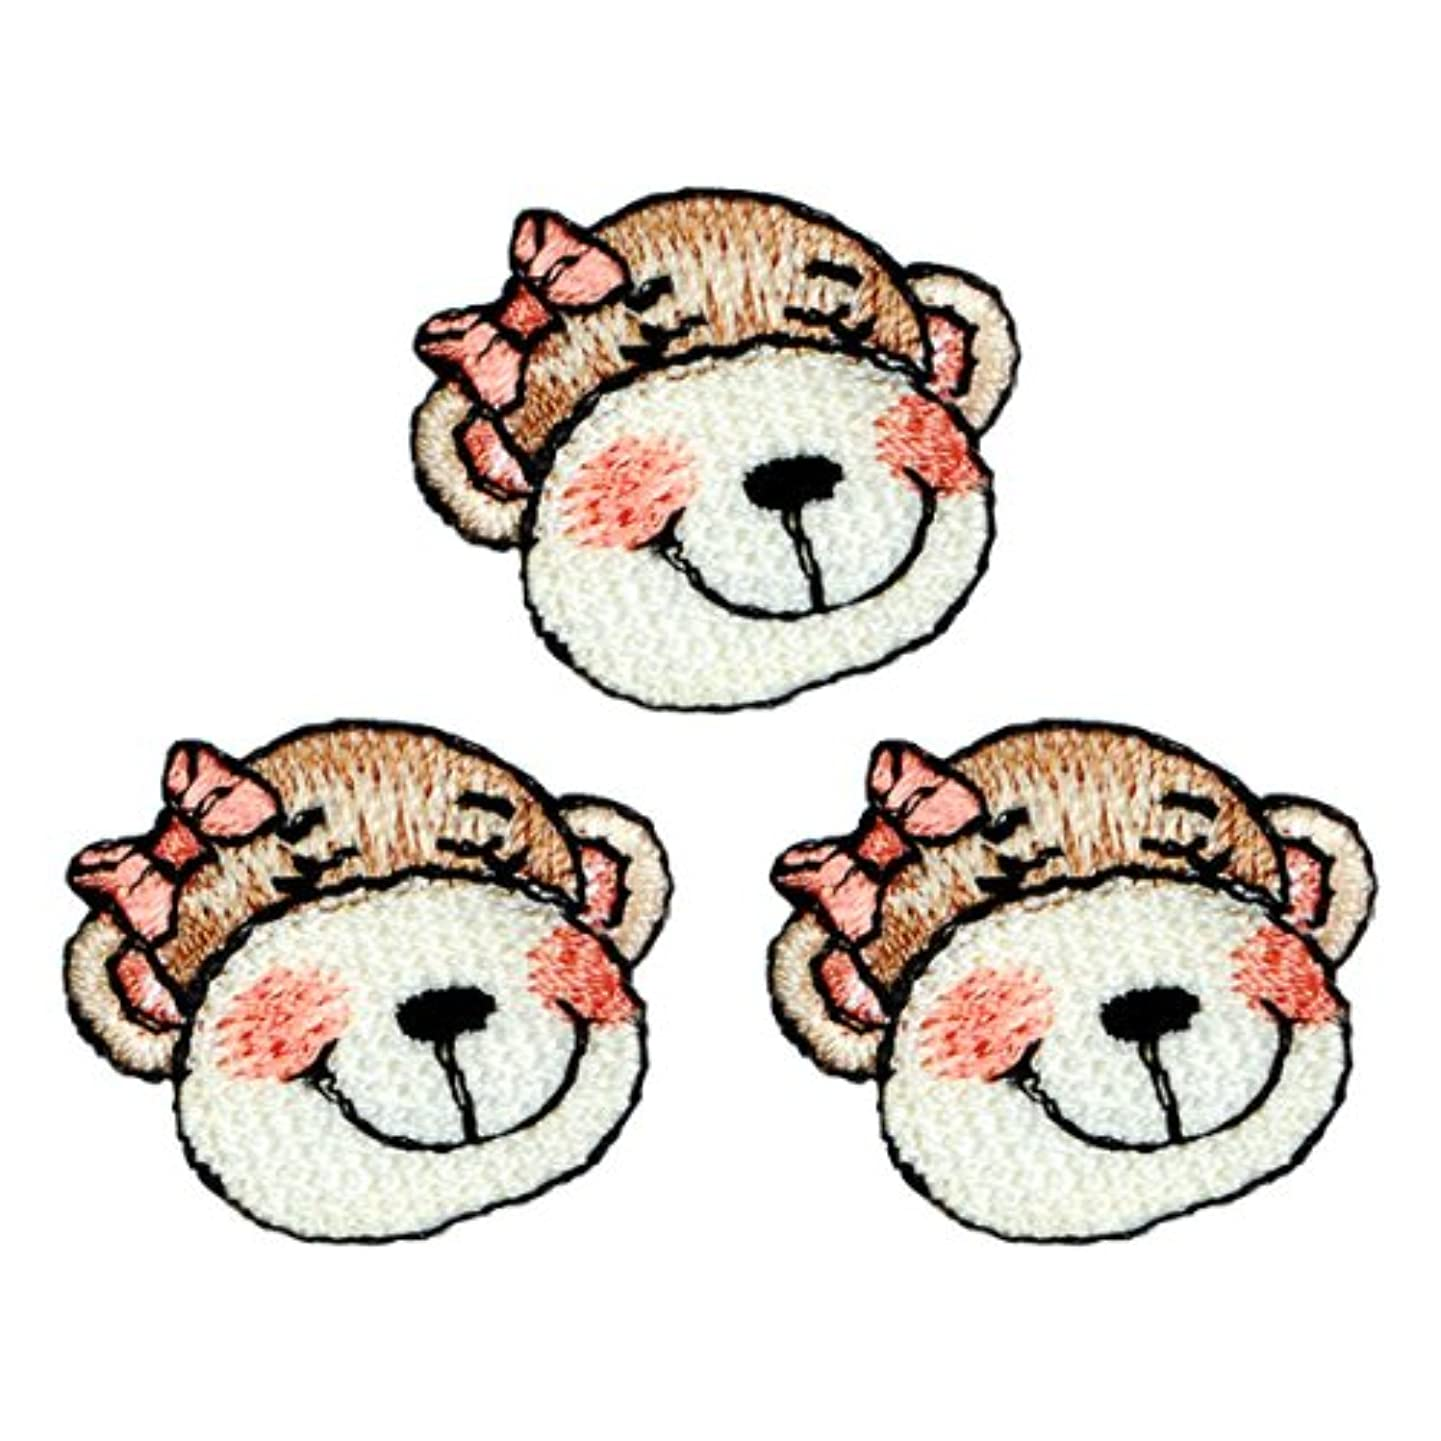 Expo Iron-on Embroidered Applique Patches, BaZooples Molly Monkey Head, 3-Pack